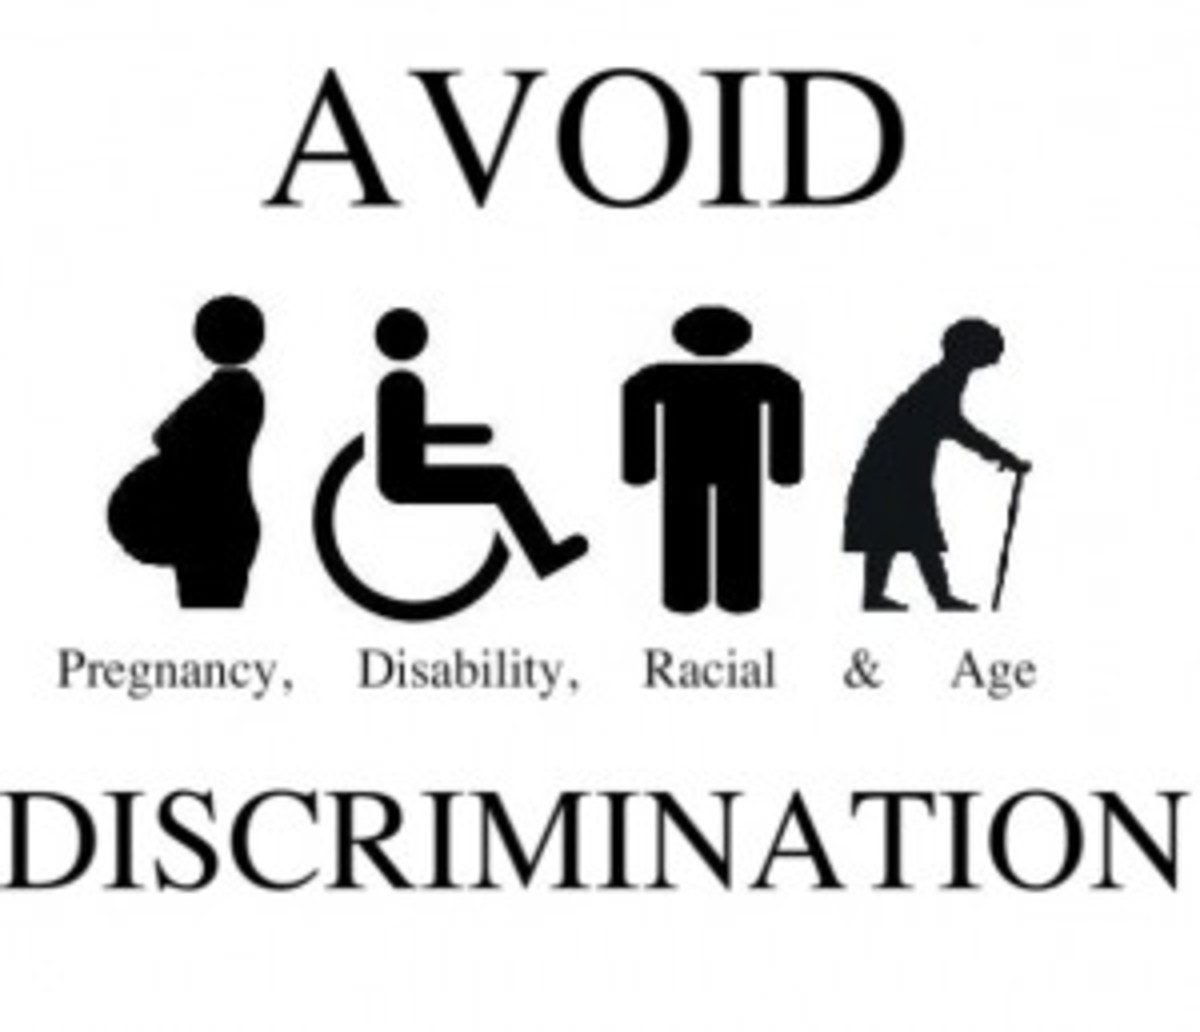 All types of discrimination must be avoided.